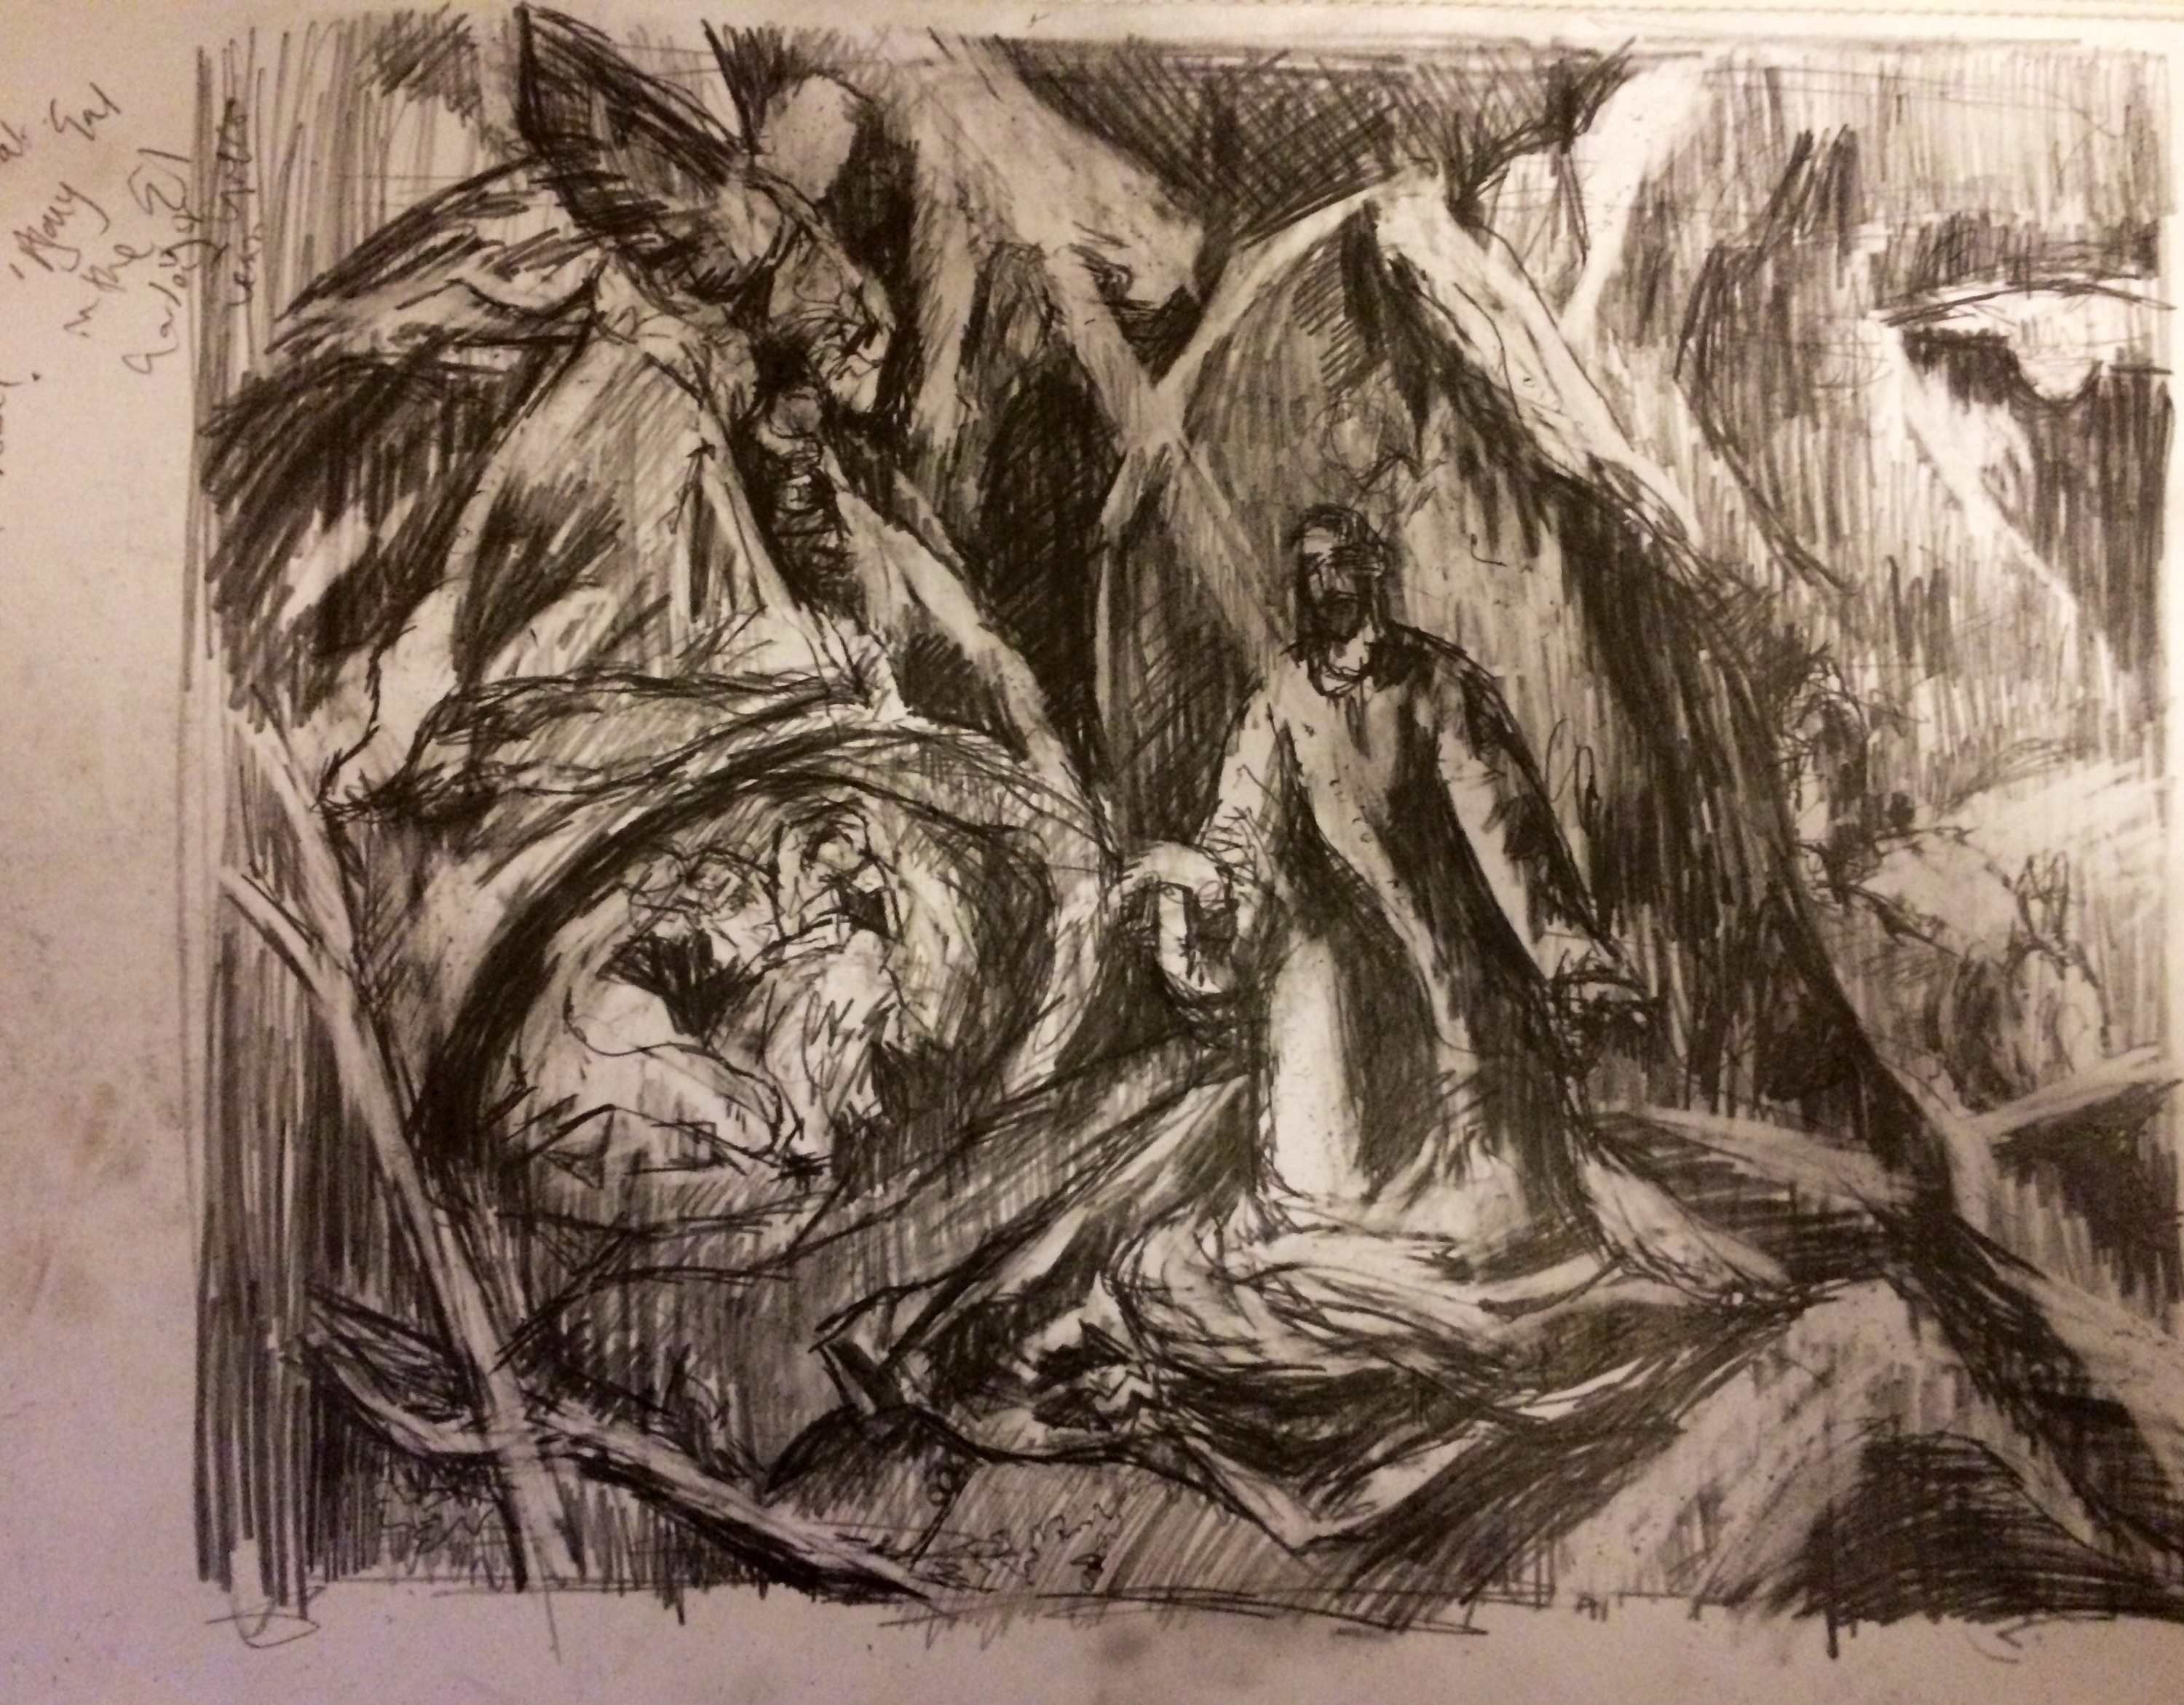 """After El Greco: Agony in the Garden"", pencil on paper, A3 sketchbook page, Charlie Kirkham, 2015."